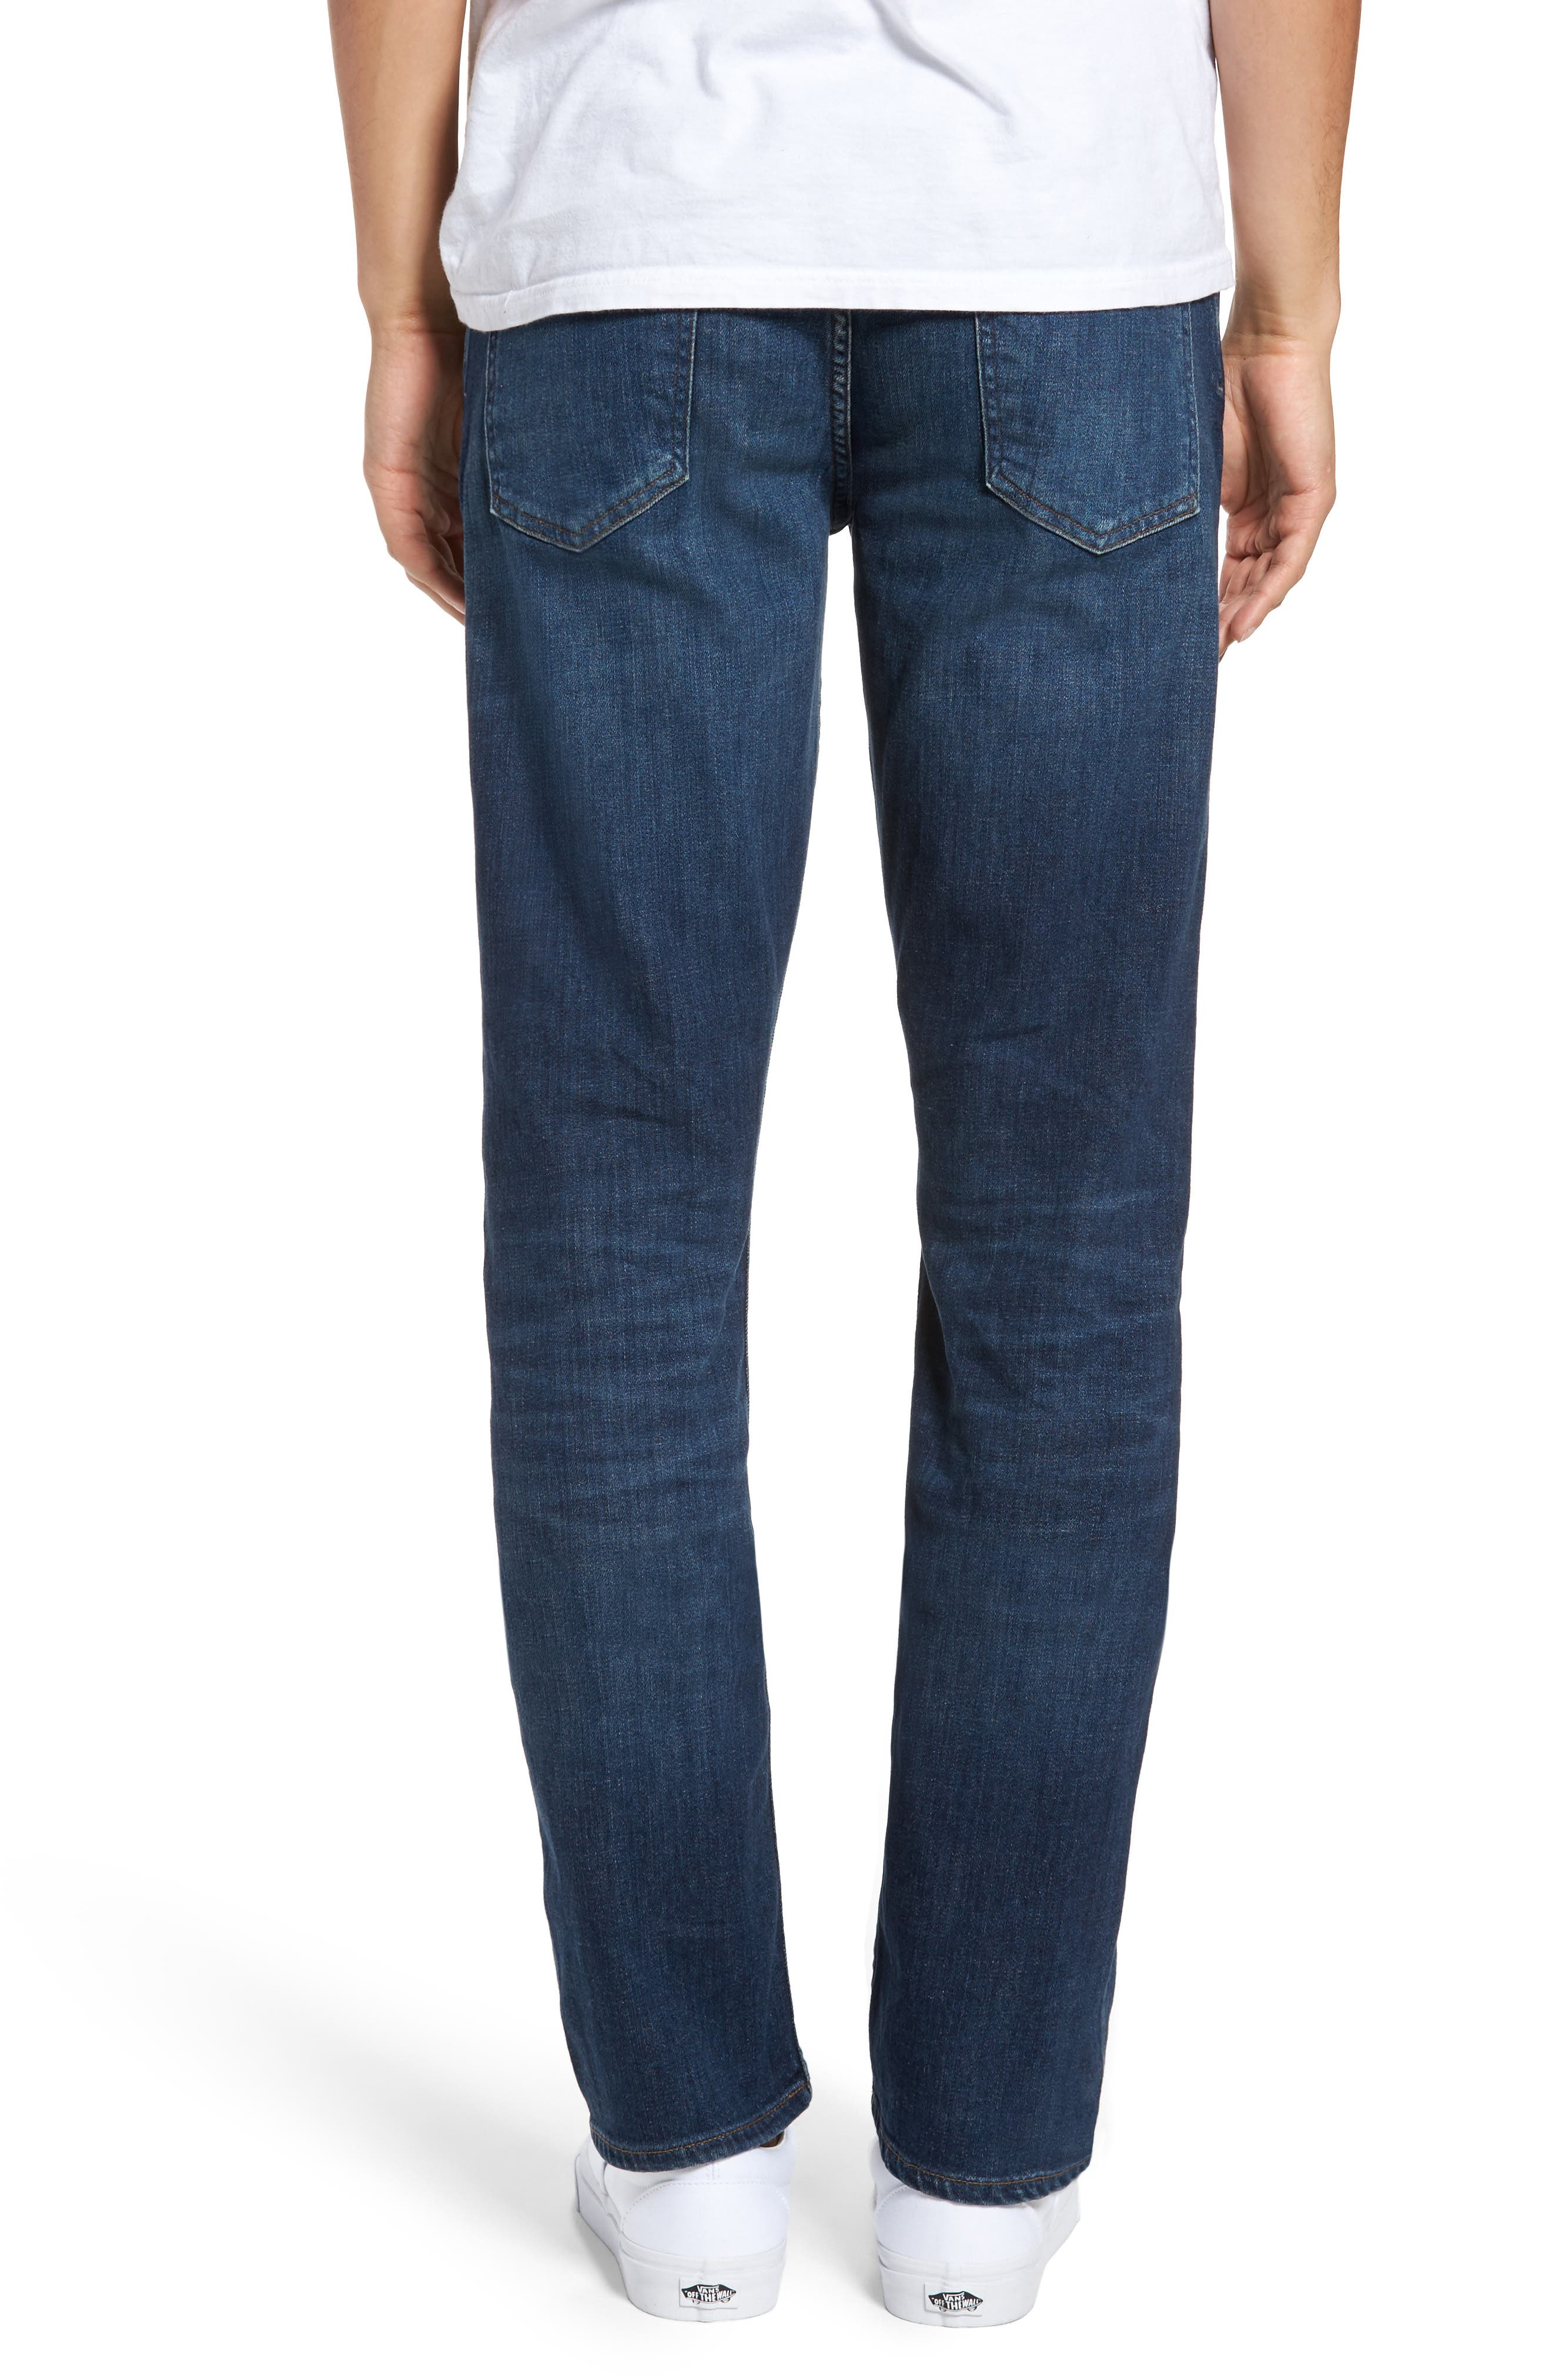 Bowery Slim Fit Jeans,                             Alternate thumbnail 2, color,                             401